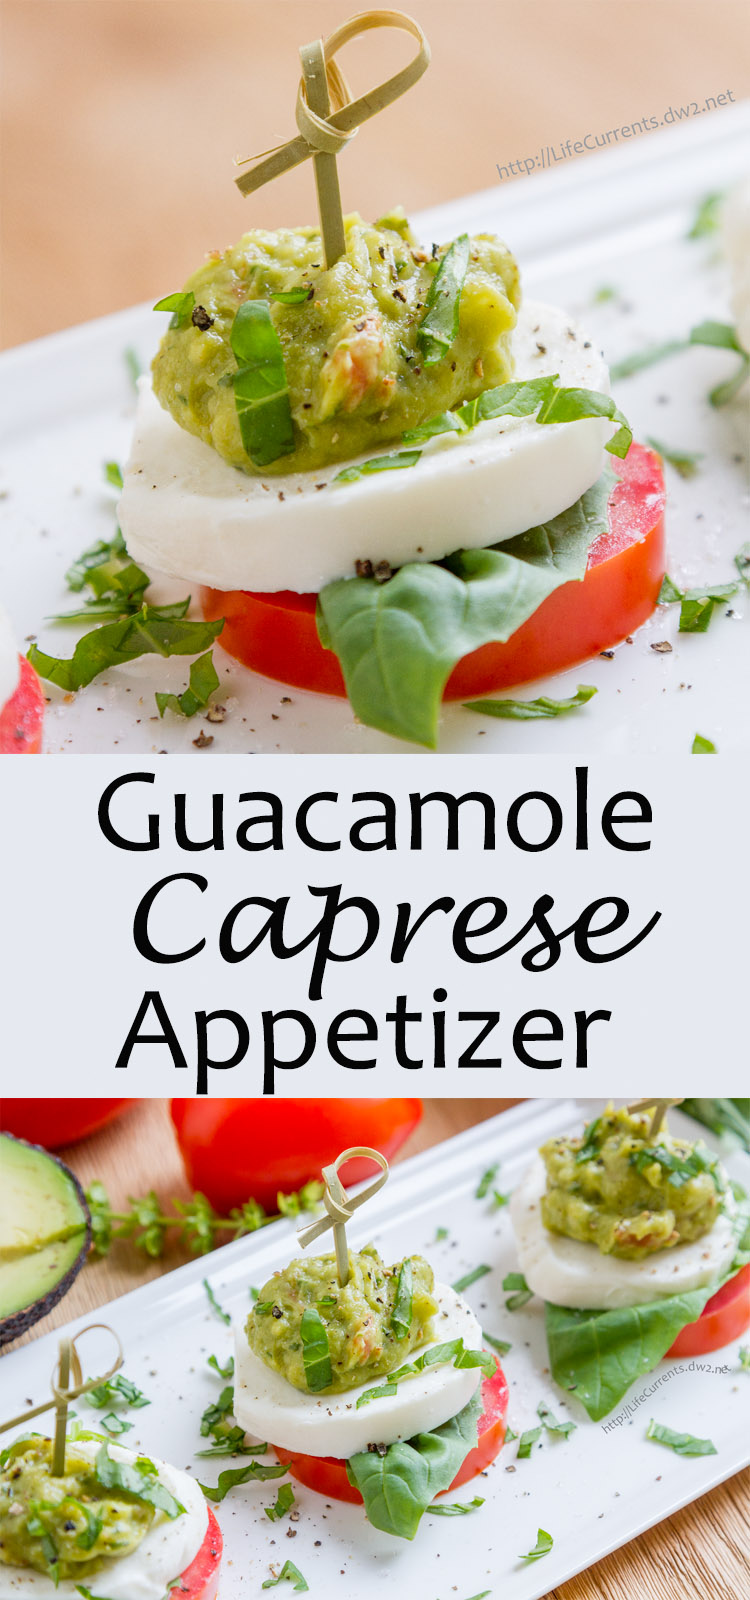 Guacamole Caprese Appetizer Bites are delicious and easy to make and will wow all your guests